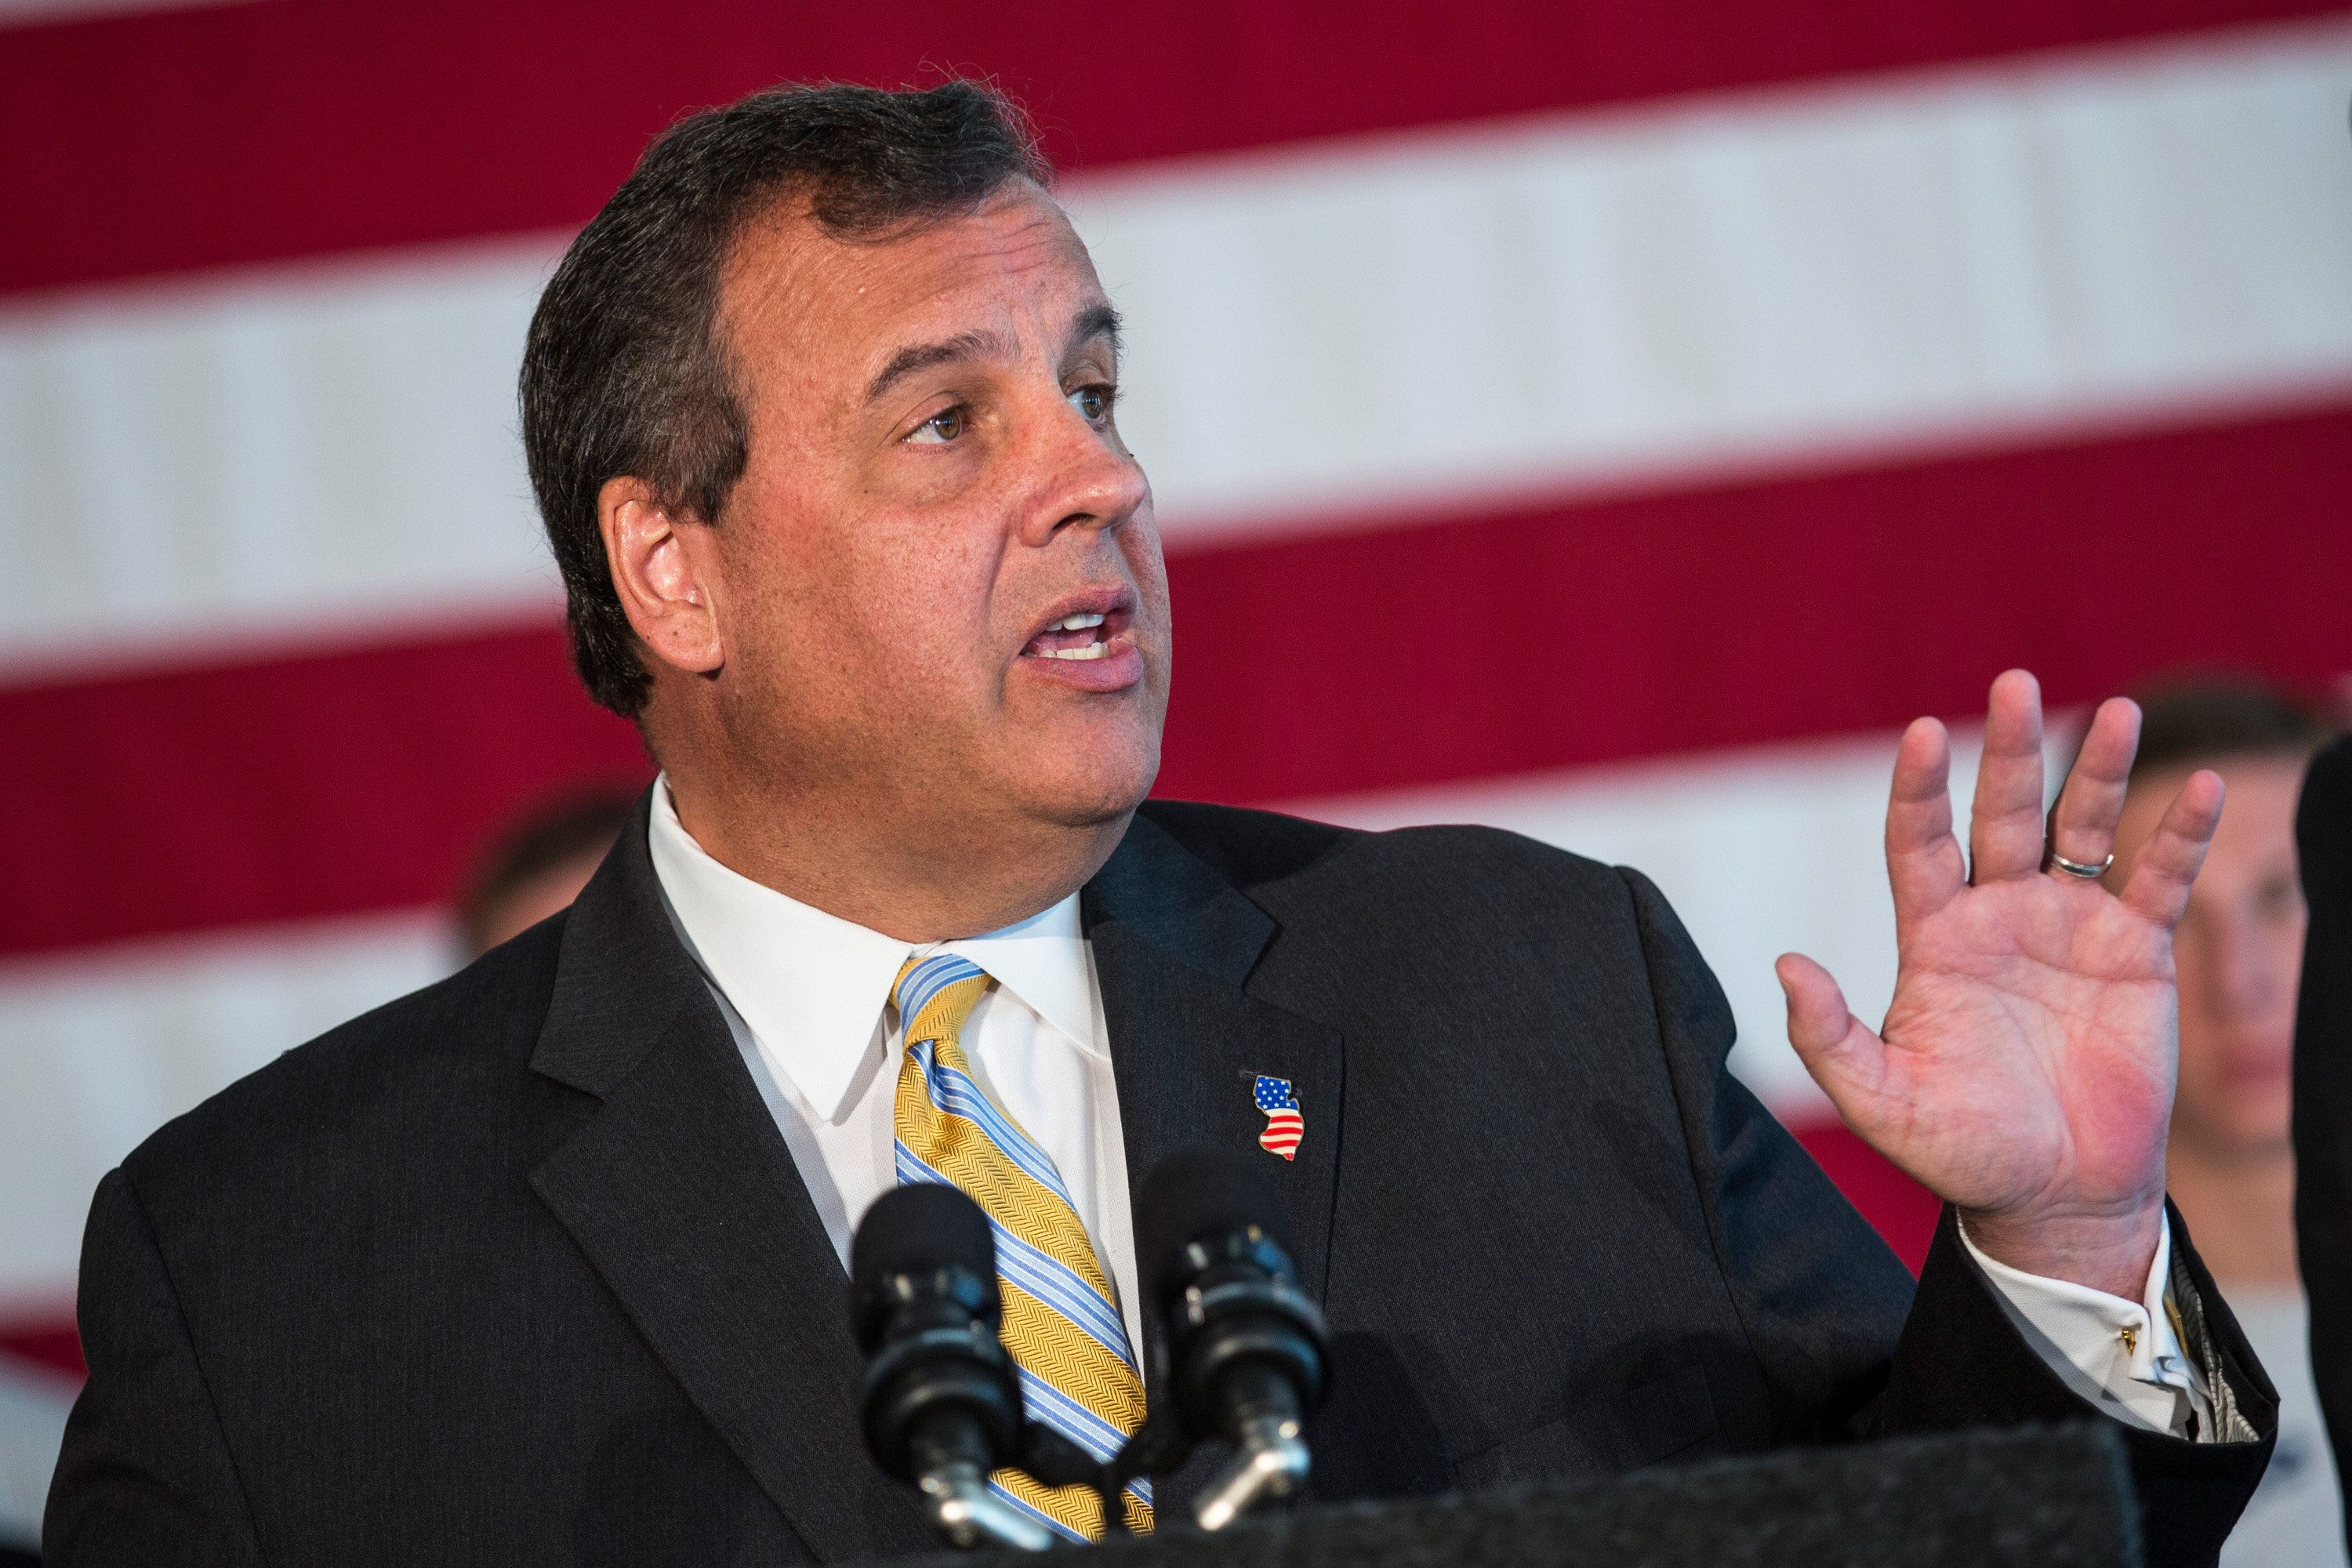 NEW BRUNSWICK, NJ - AUGUST 25:  New Jersey Governor and Republican presidential hopeful Chris Christie speaks at Chabad House at Rutgers University to express his opposition to President Obama's Iran deal on August 25, 2015 in New Brunswick, New Jersey. Christie also encouraged U.S. Senator Cory Booker (D-NJ) to oppose the deal.  (Photo by Andrew Burton/Getty Images)